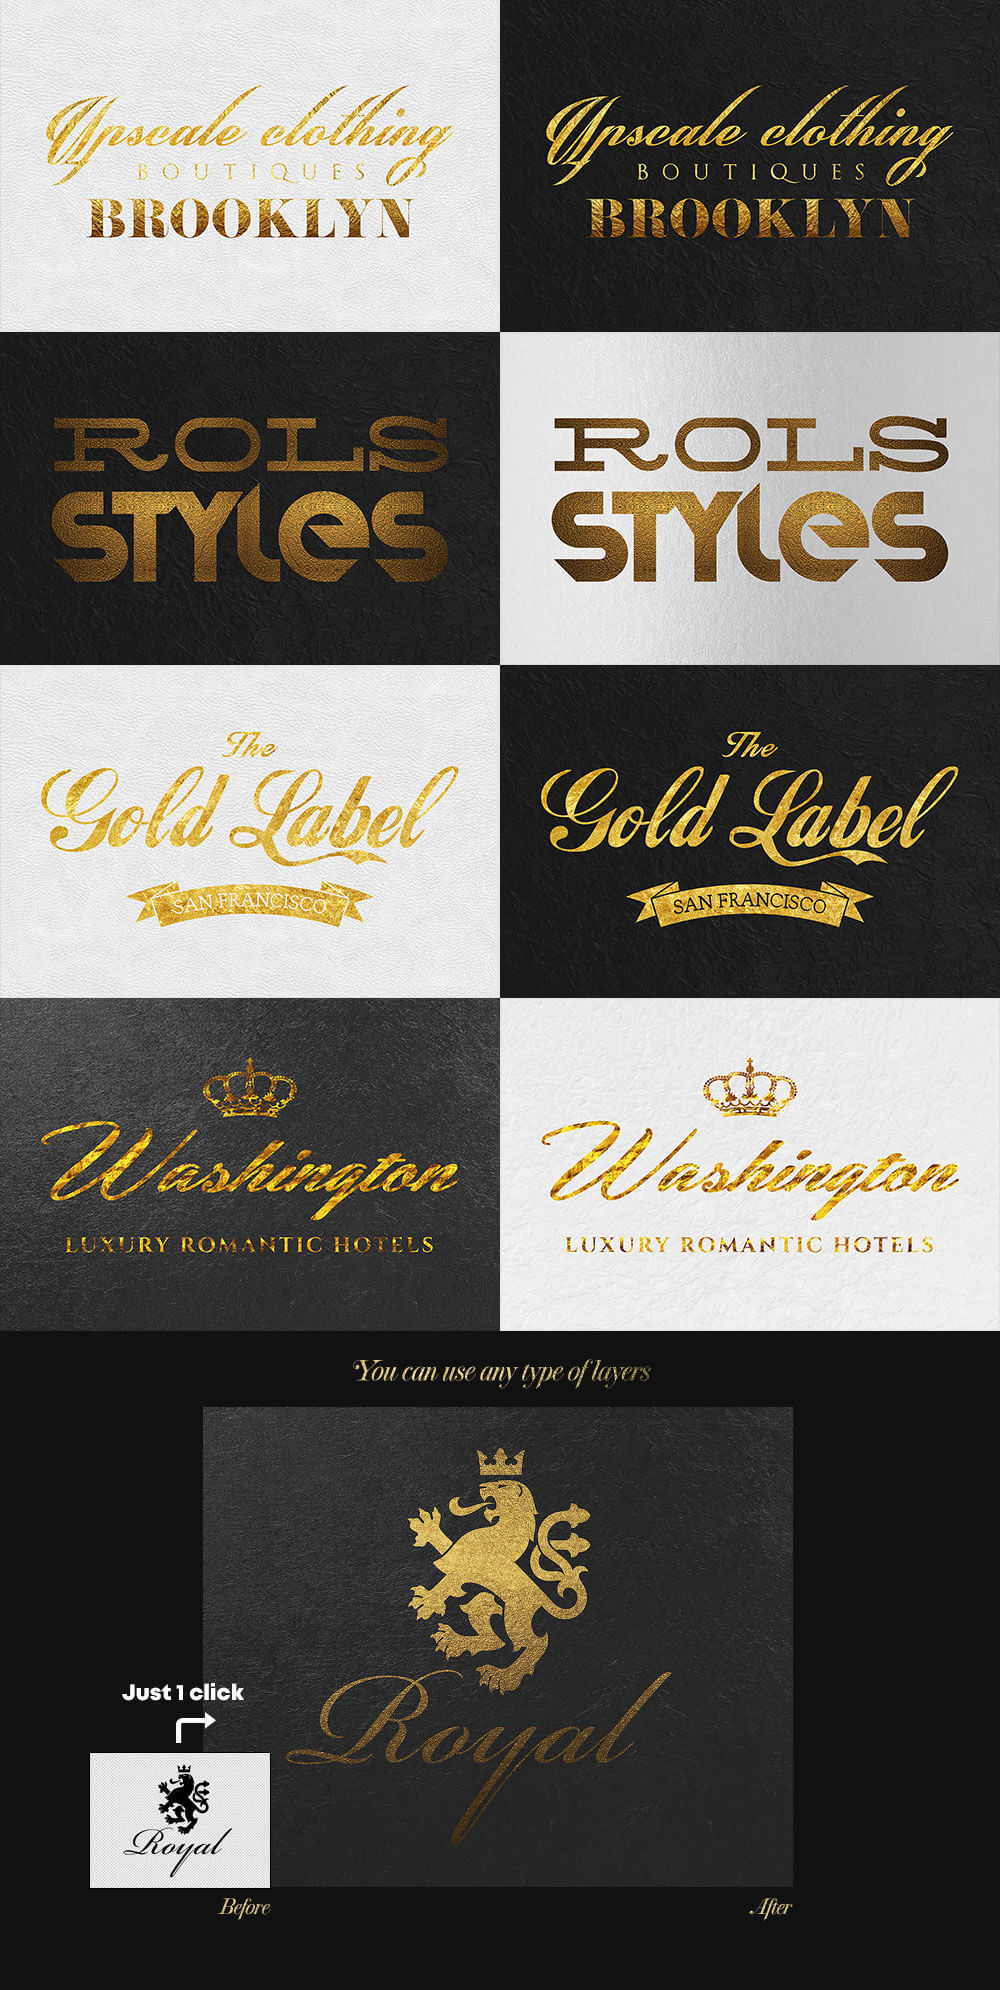 The Golden Foil Text Effects Bundle - Golden Text Effects 2 Preview - 2